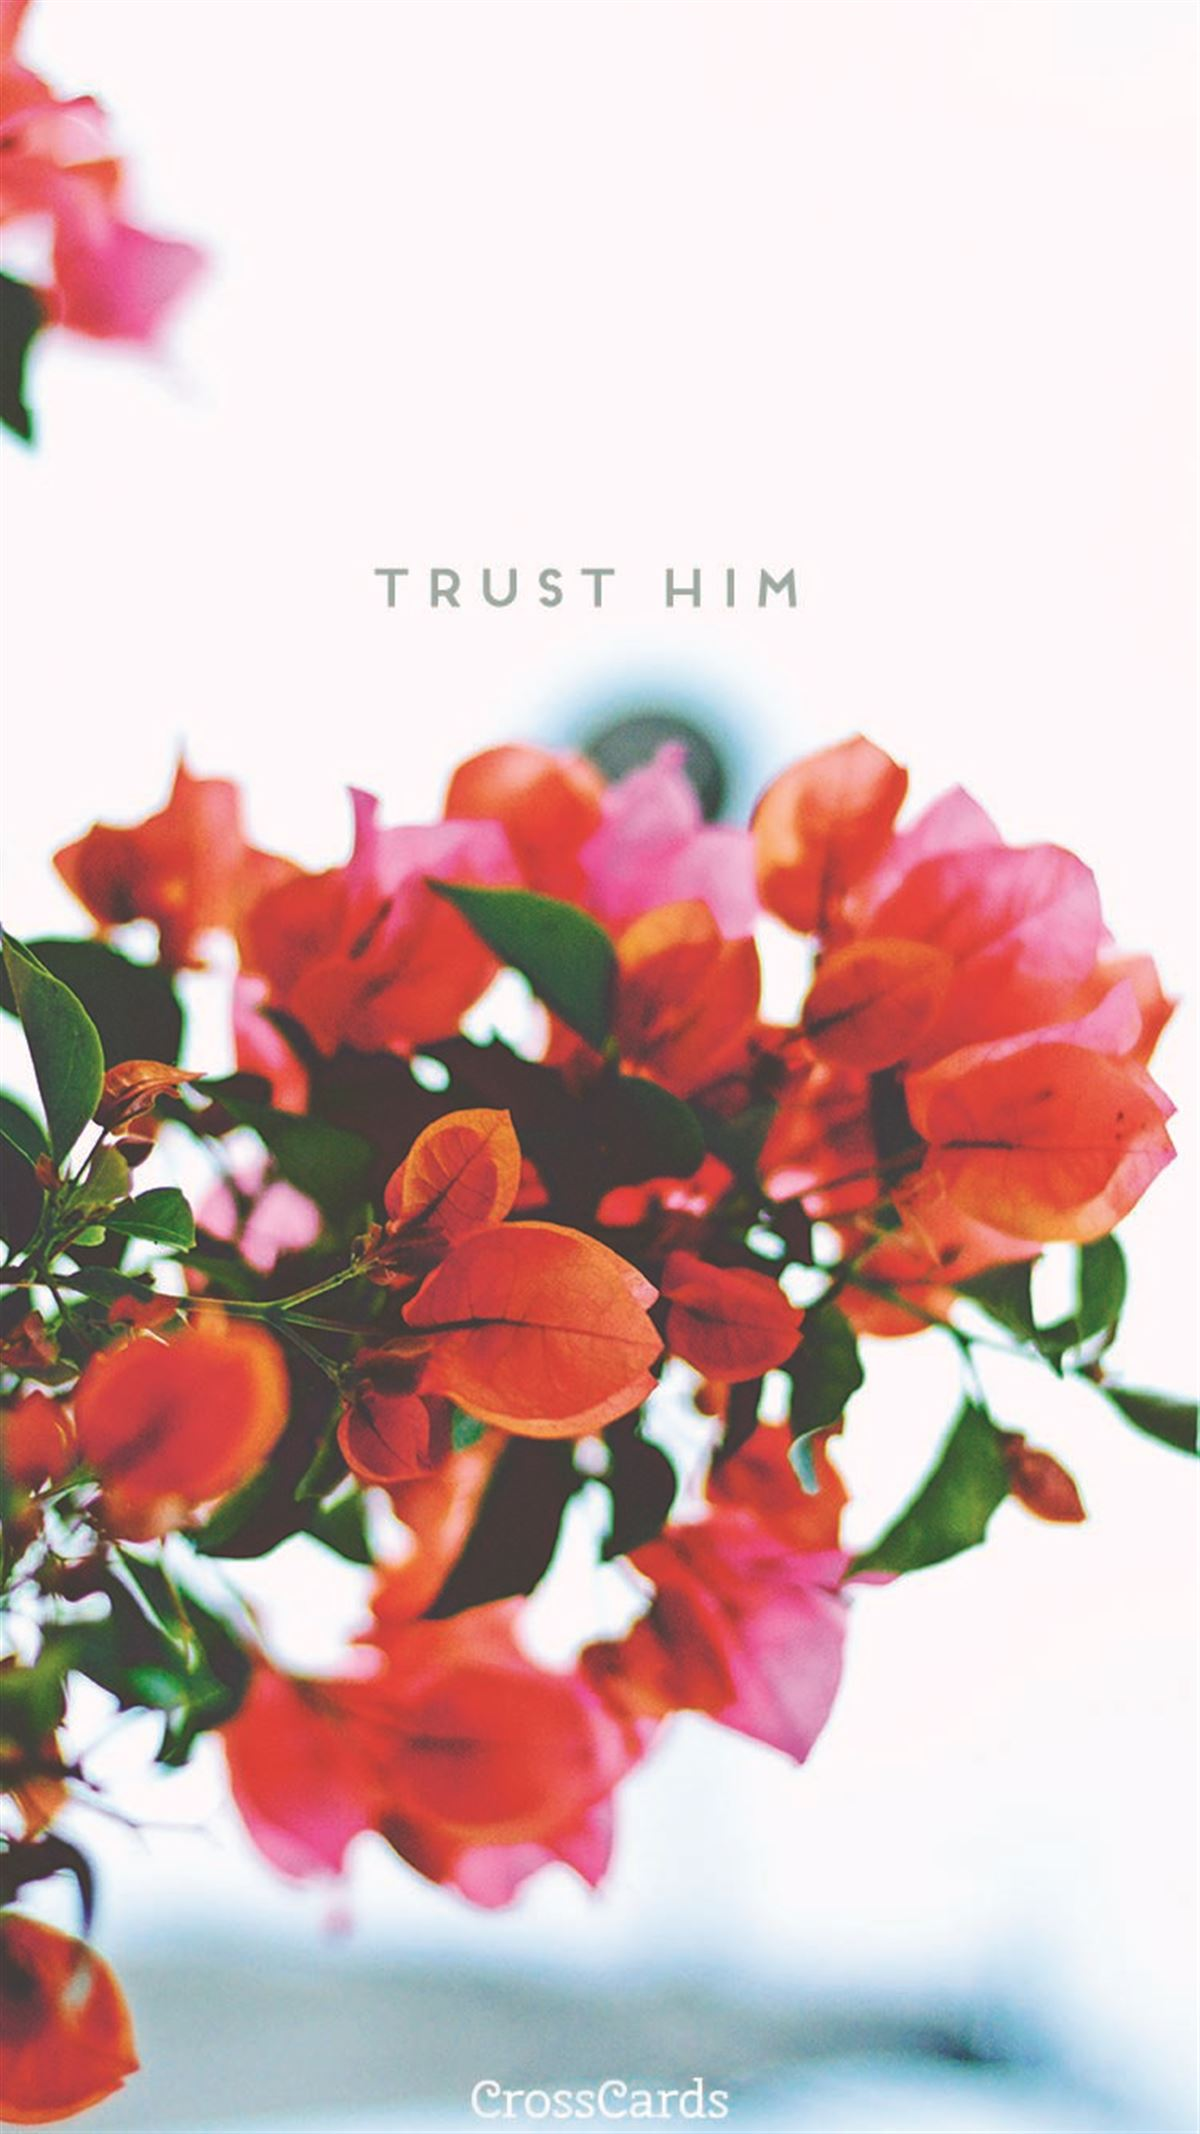 Trust Him ecard, online card